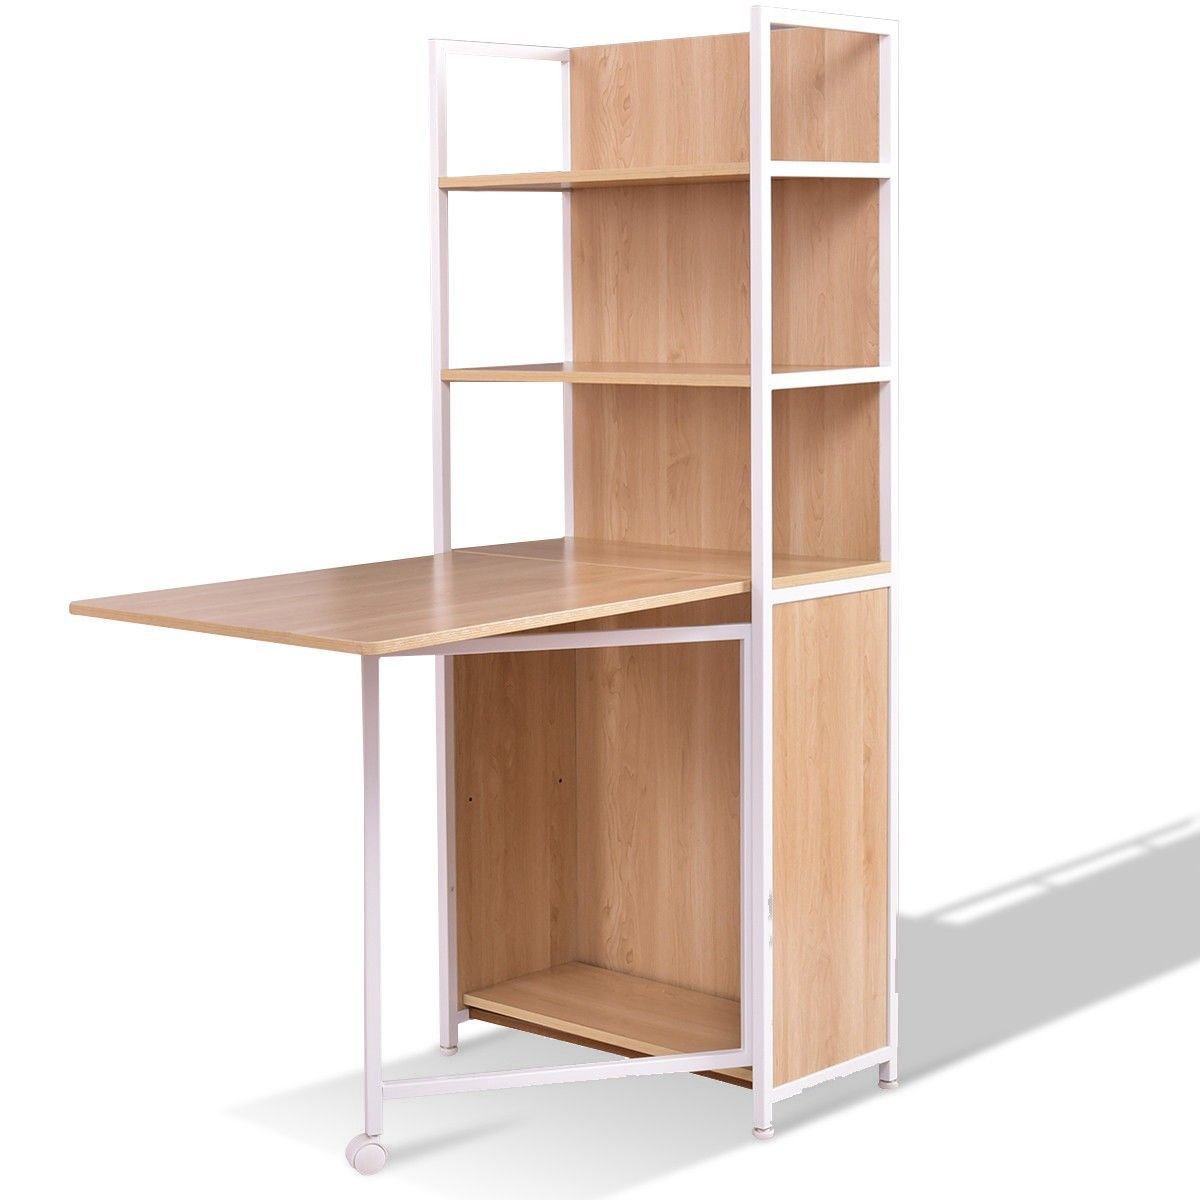 2-in-1 Folding Fold Out Convertible Desk With Cabinet